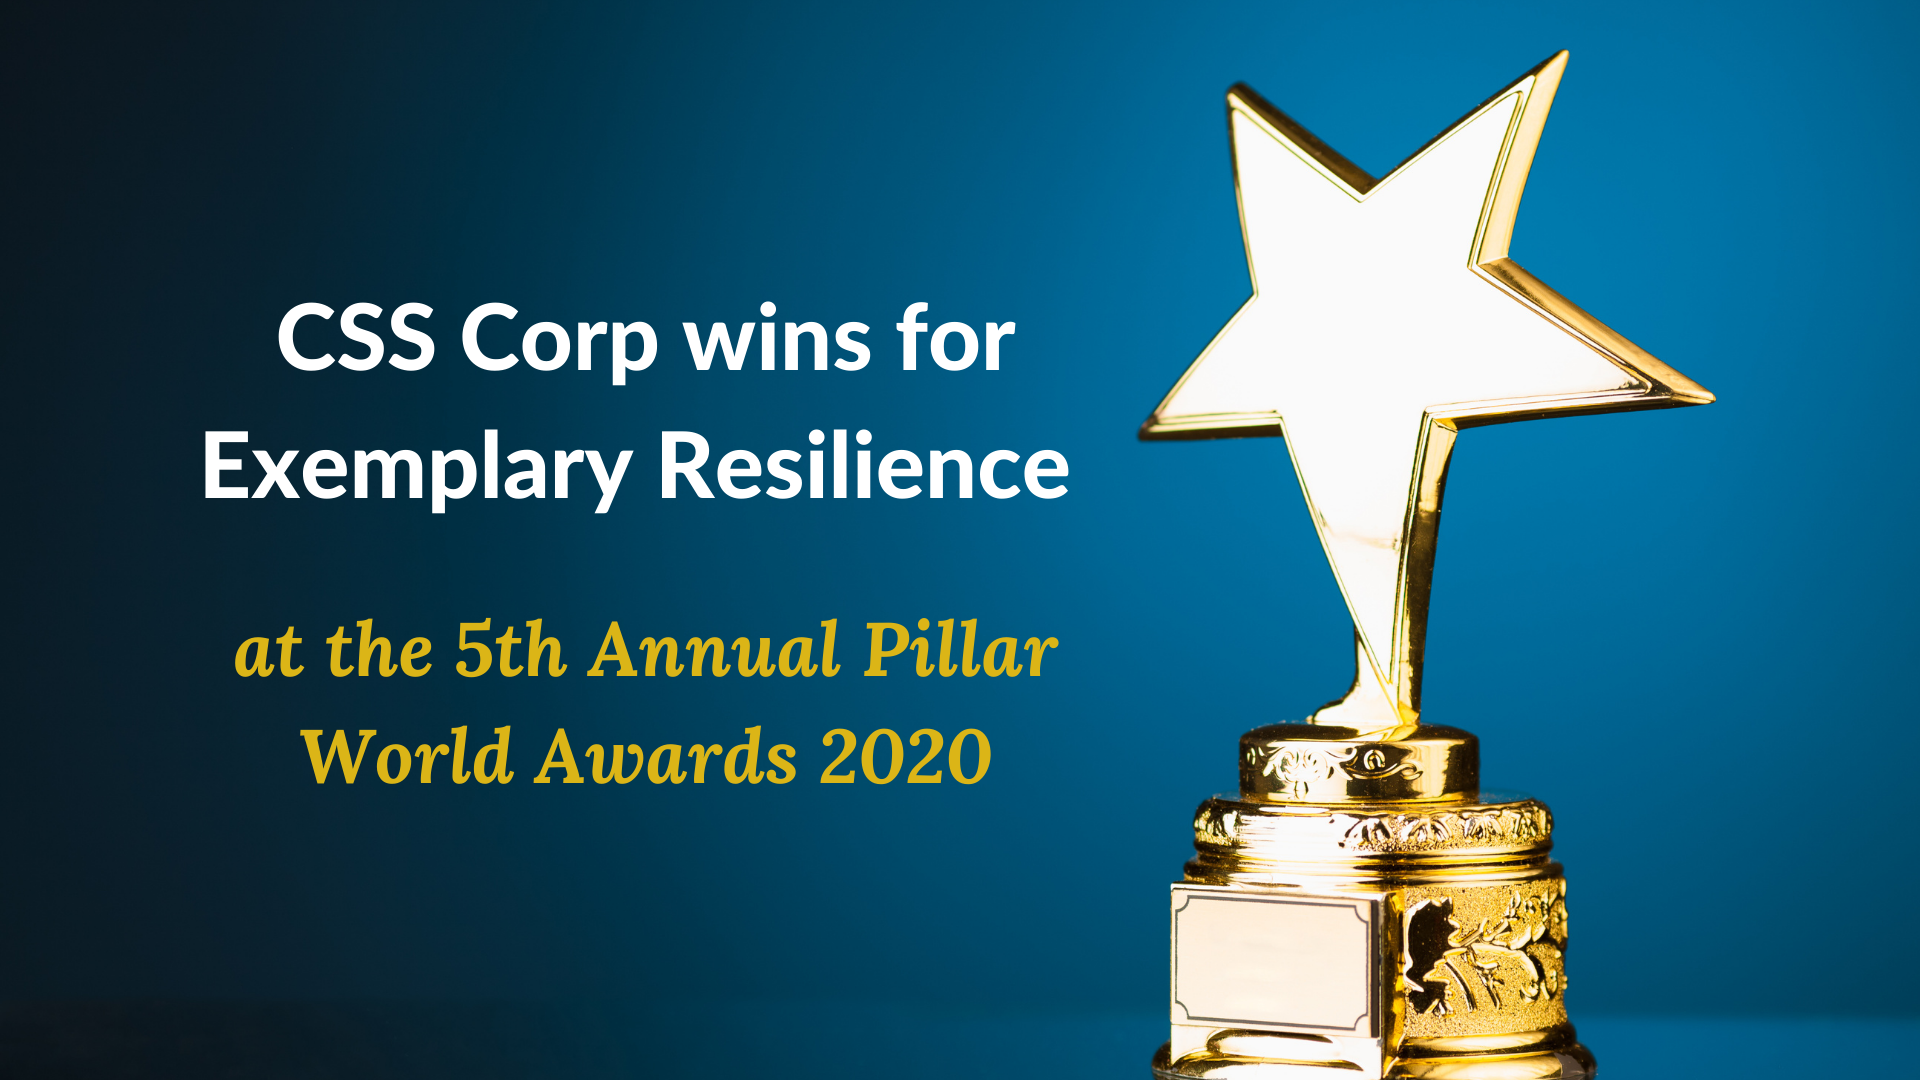 CSS Corp awarded for Exemplary Resilience at the 5th Annual Pillar World Awards 2020